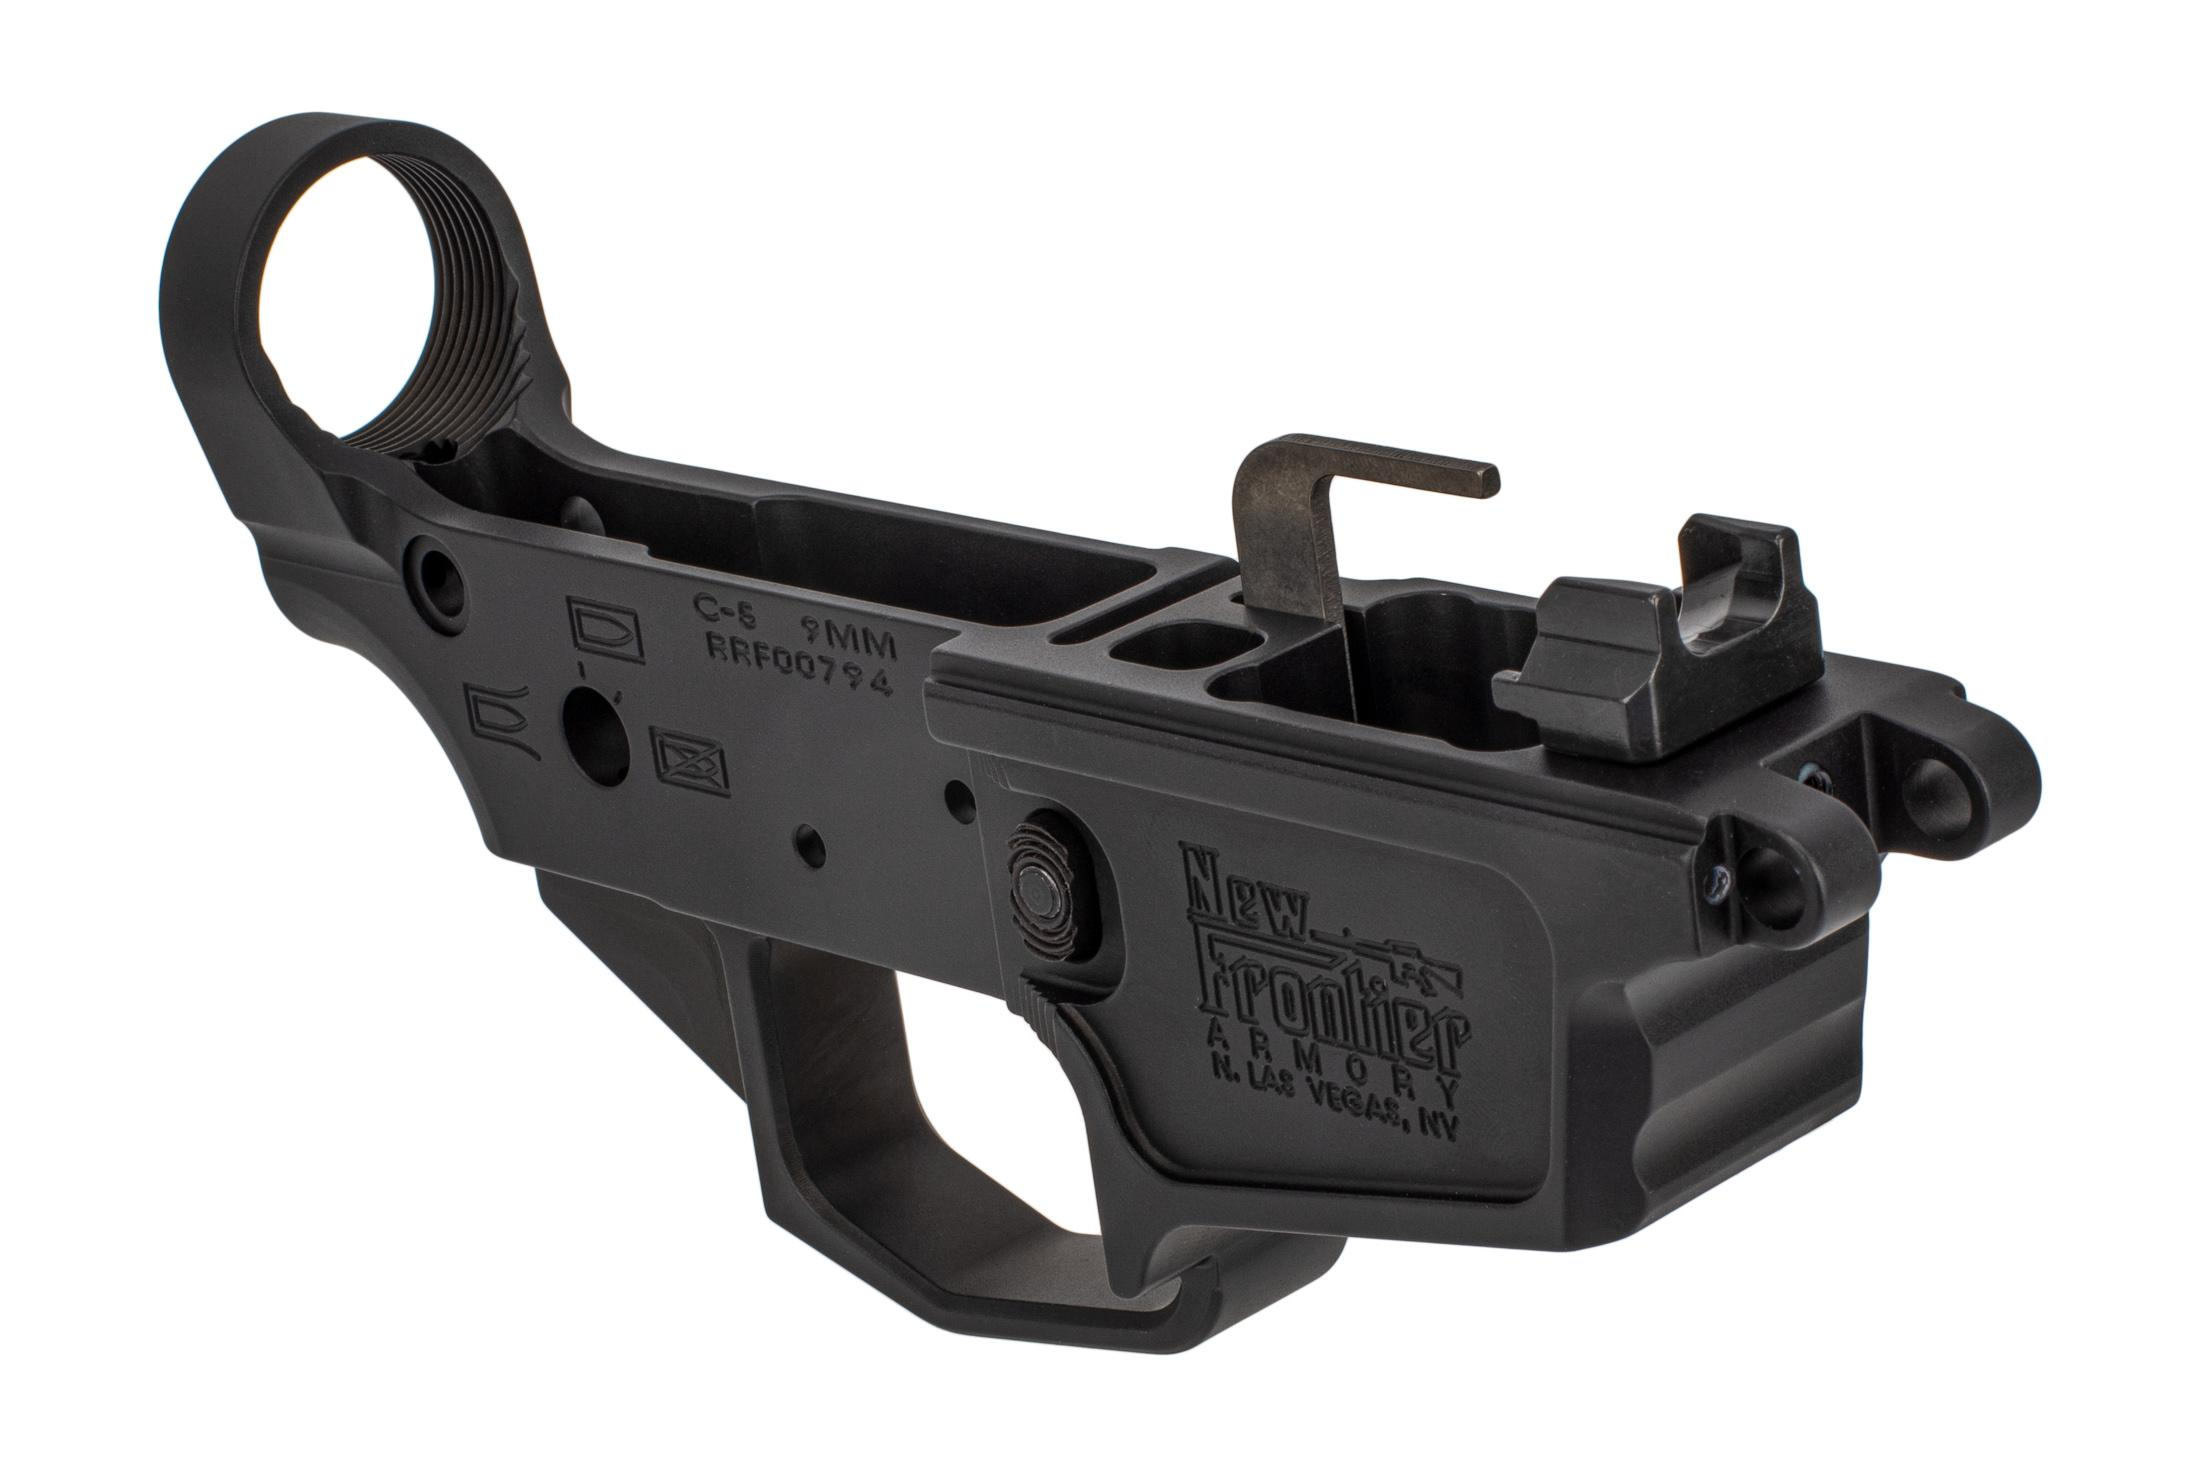 New Frontier Armory C5 9mm stripped lower compatible with 9mm MP5 Magazines